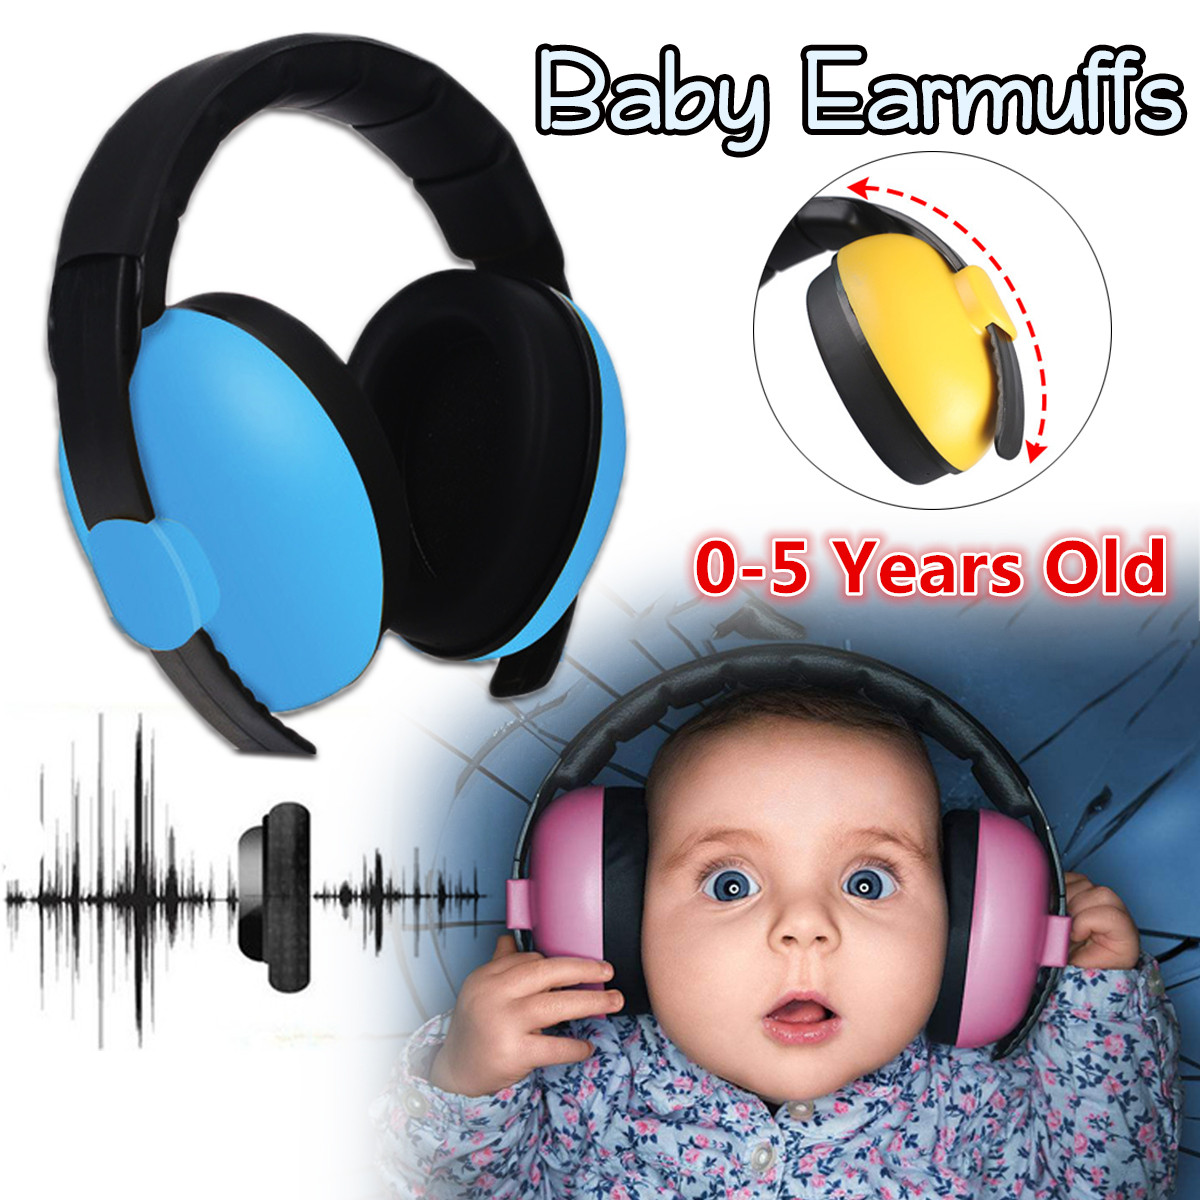 Baby Earmuffs 3 Months-5 Years Old Child Baby Hearing Protection Safety Earmuffs Noise Reduction Ear Protector